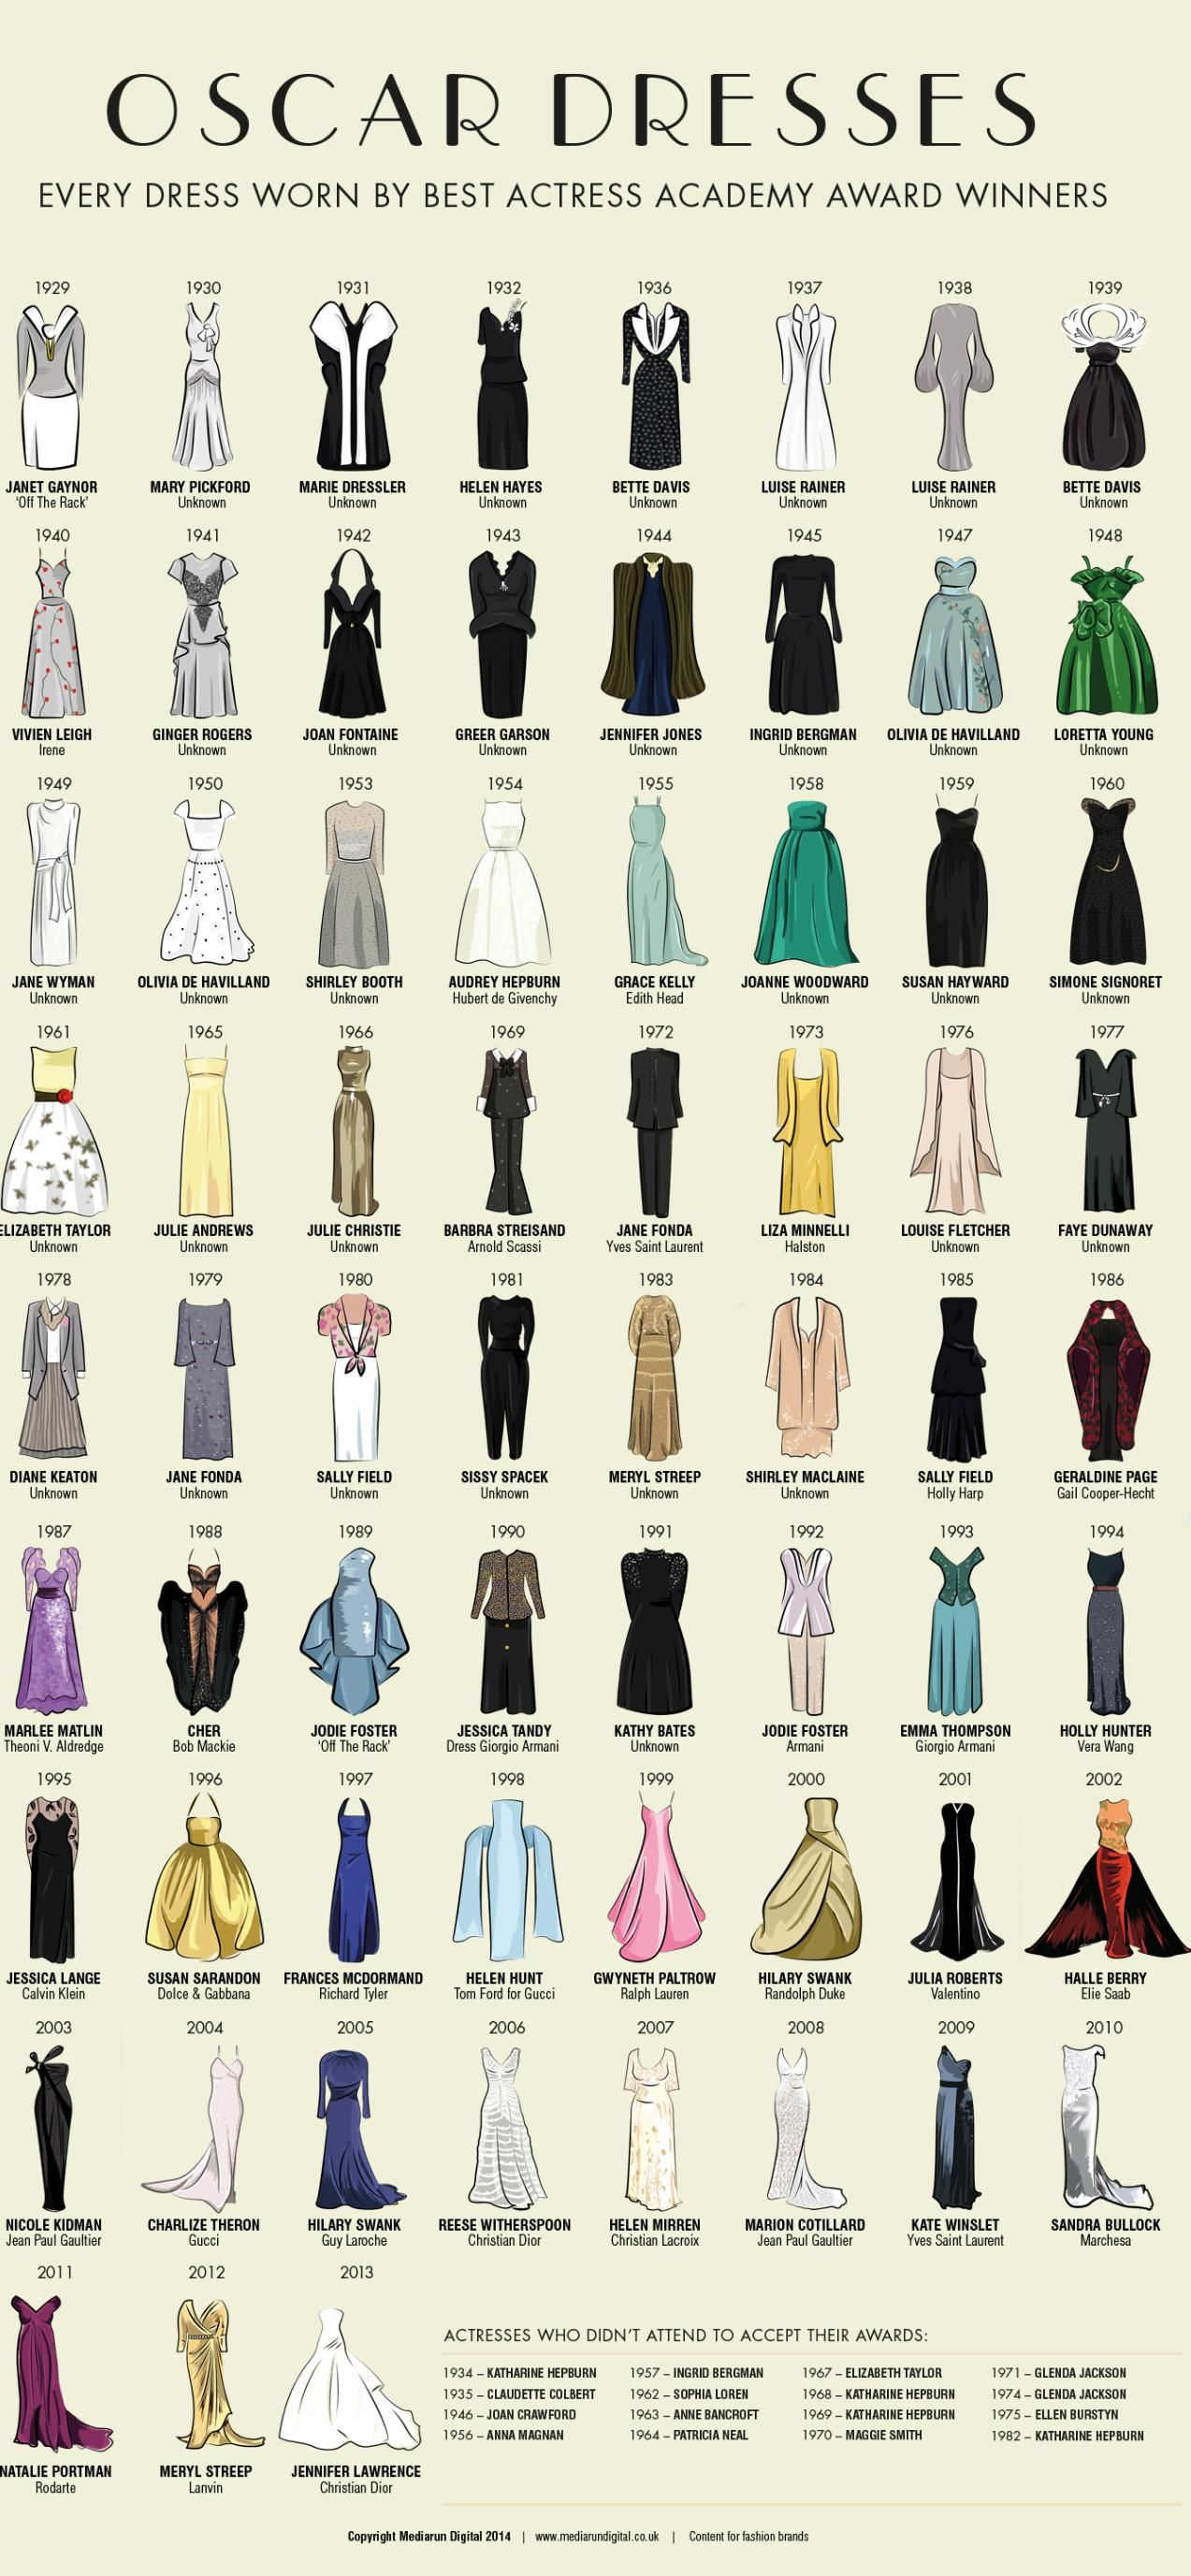 Oscar Dresses ~ Ever dress worn by Best Actress Academy Award Winner ~ The Studio Commissary